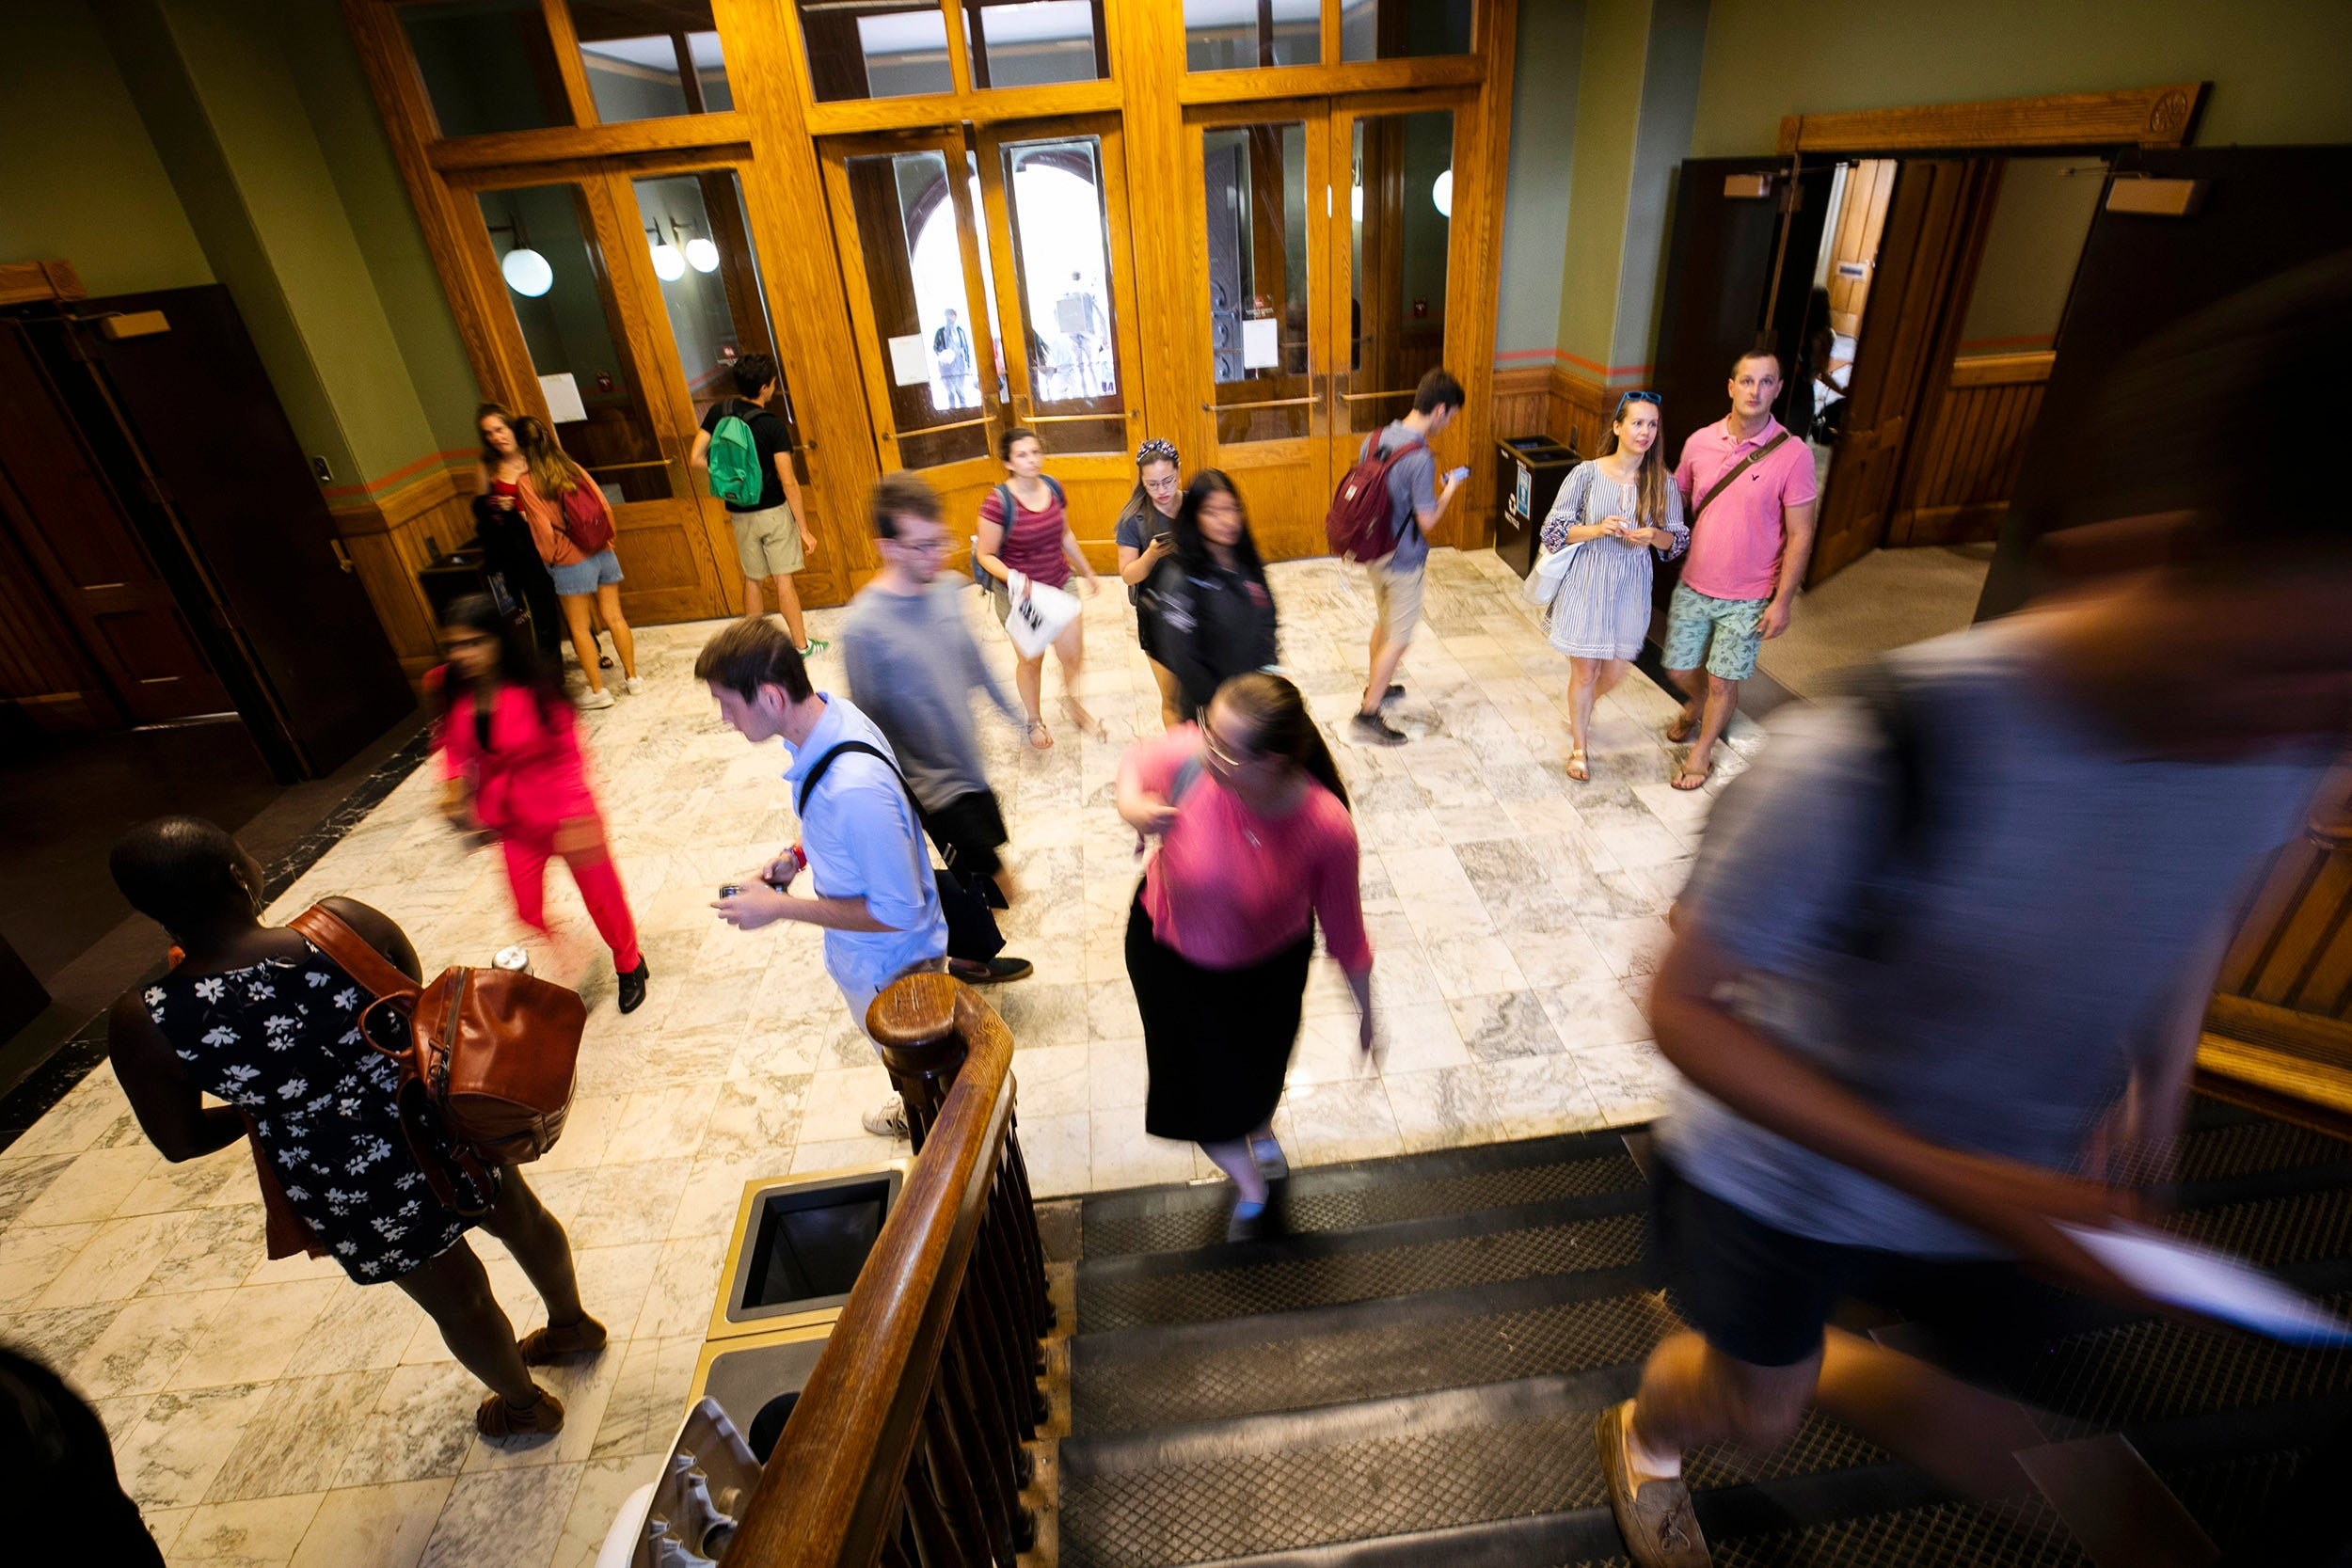 Students walk around the entrance to Sever Hall.